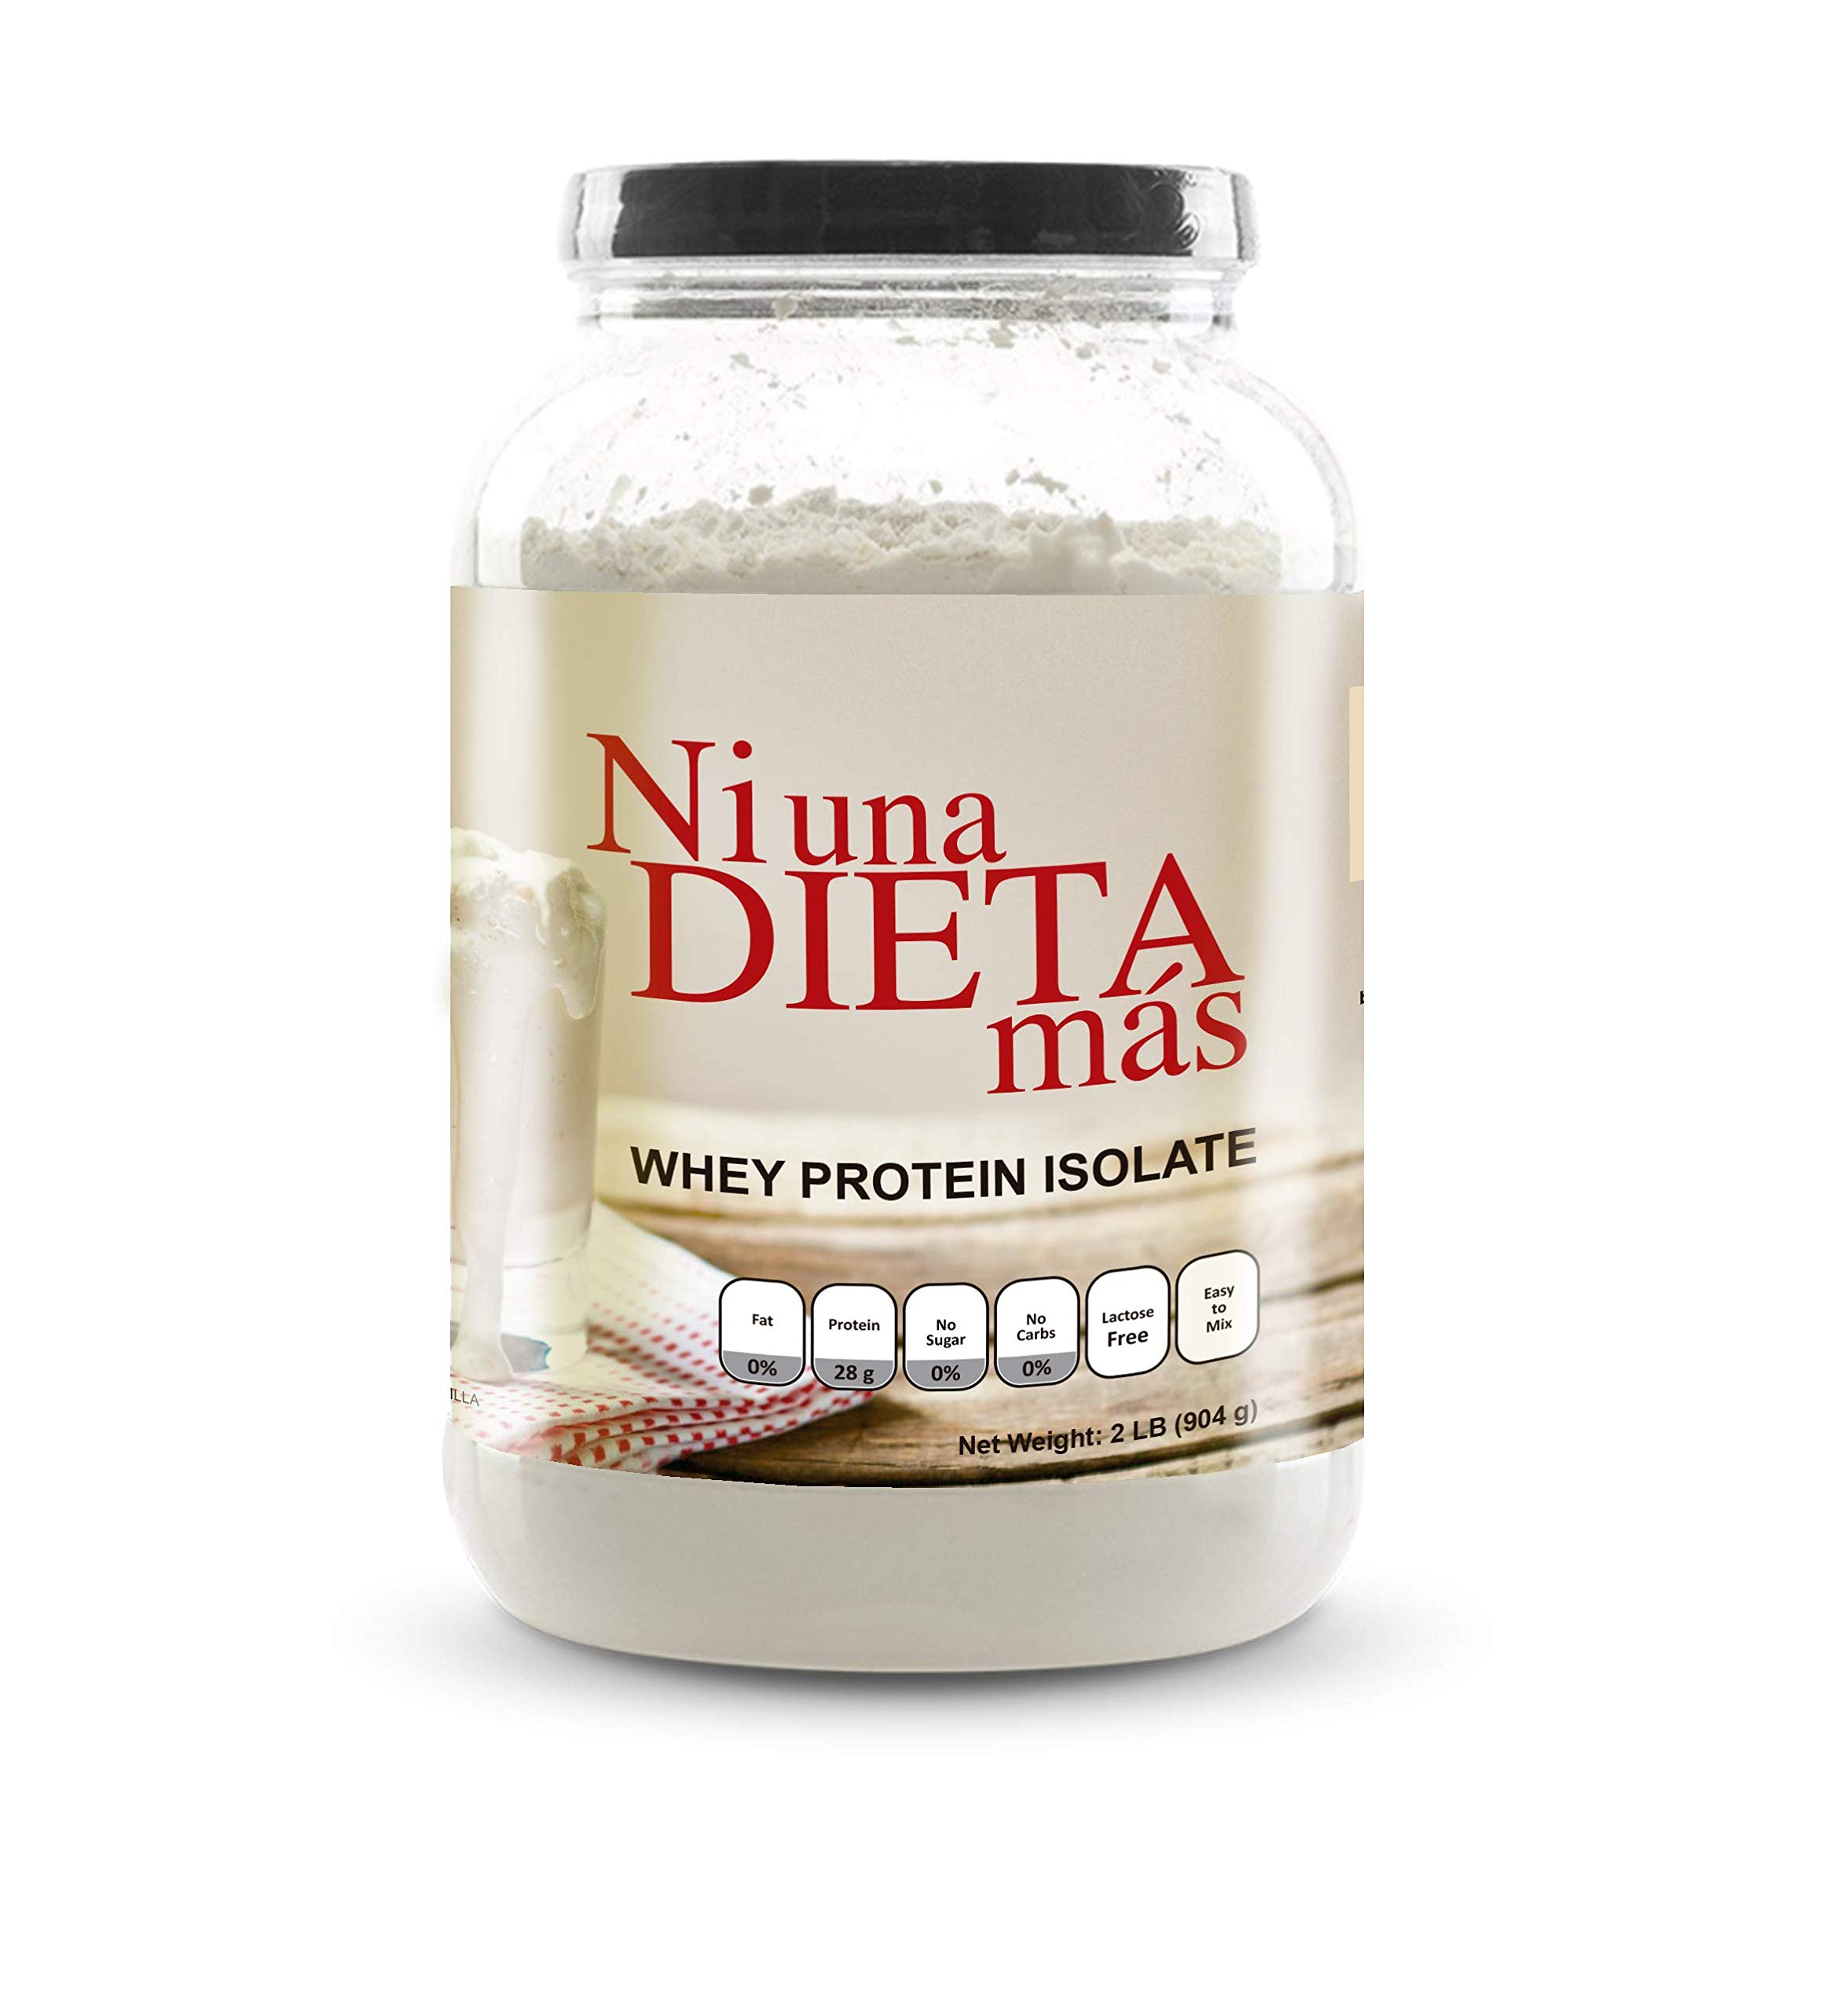 NI UNA DIETA MAS - Whey Protein Isolate (Delicious Vanilla) No Sugar, No